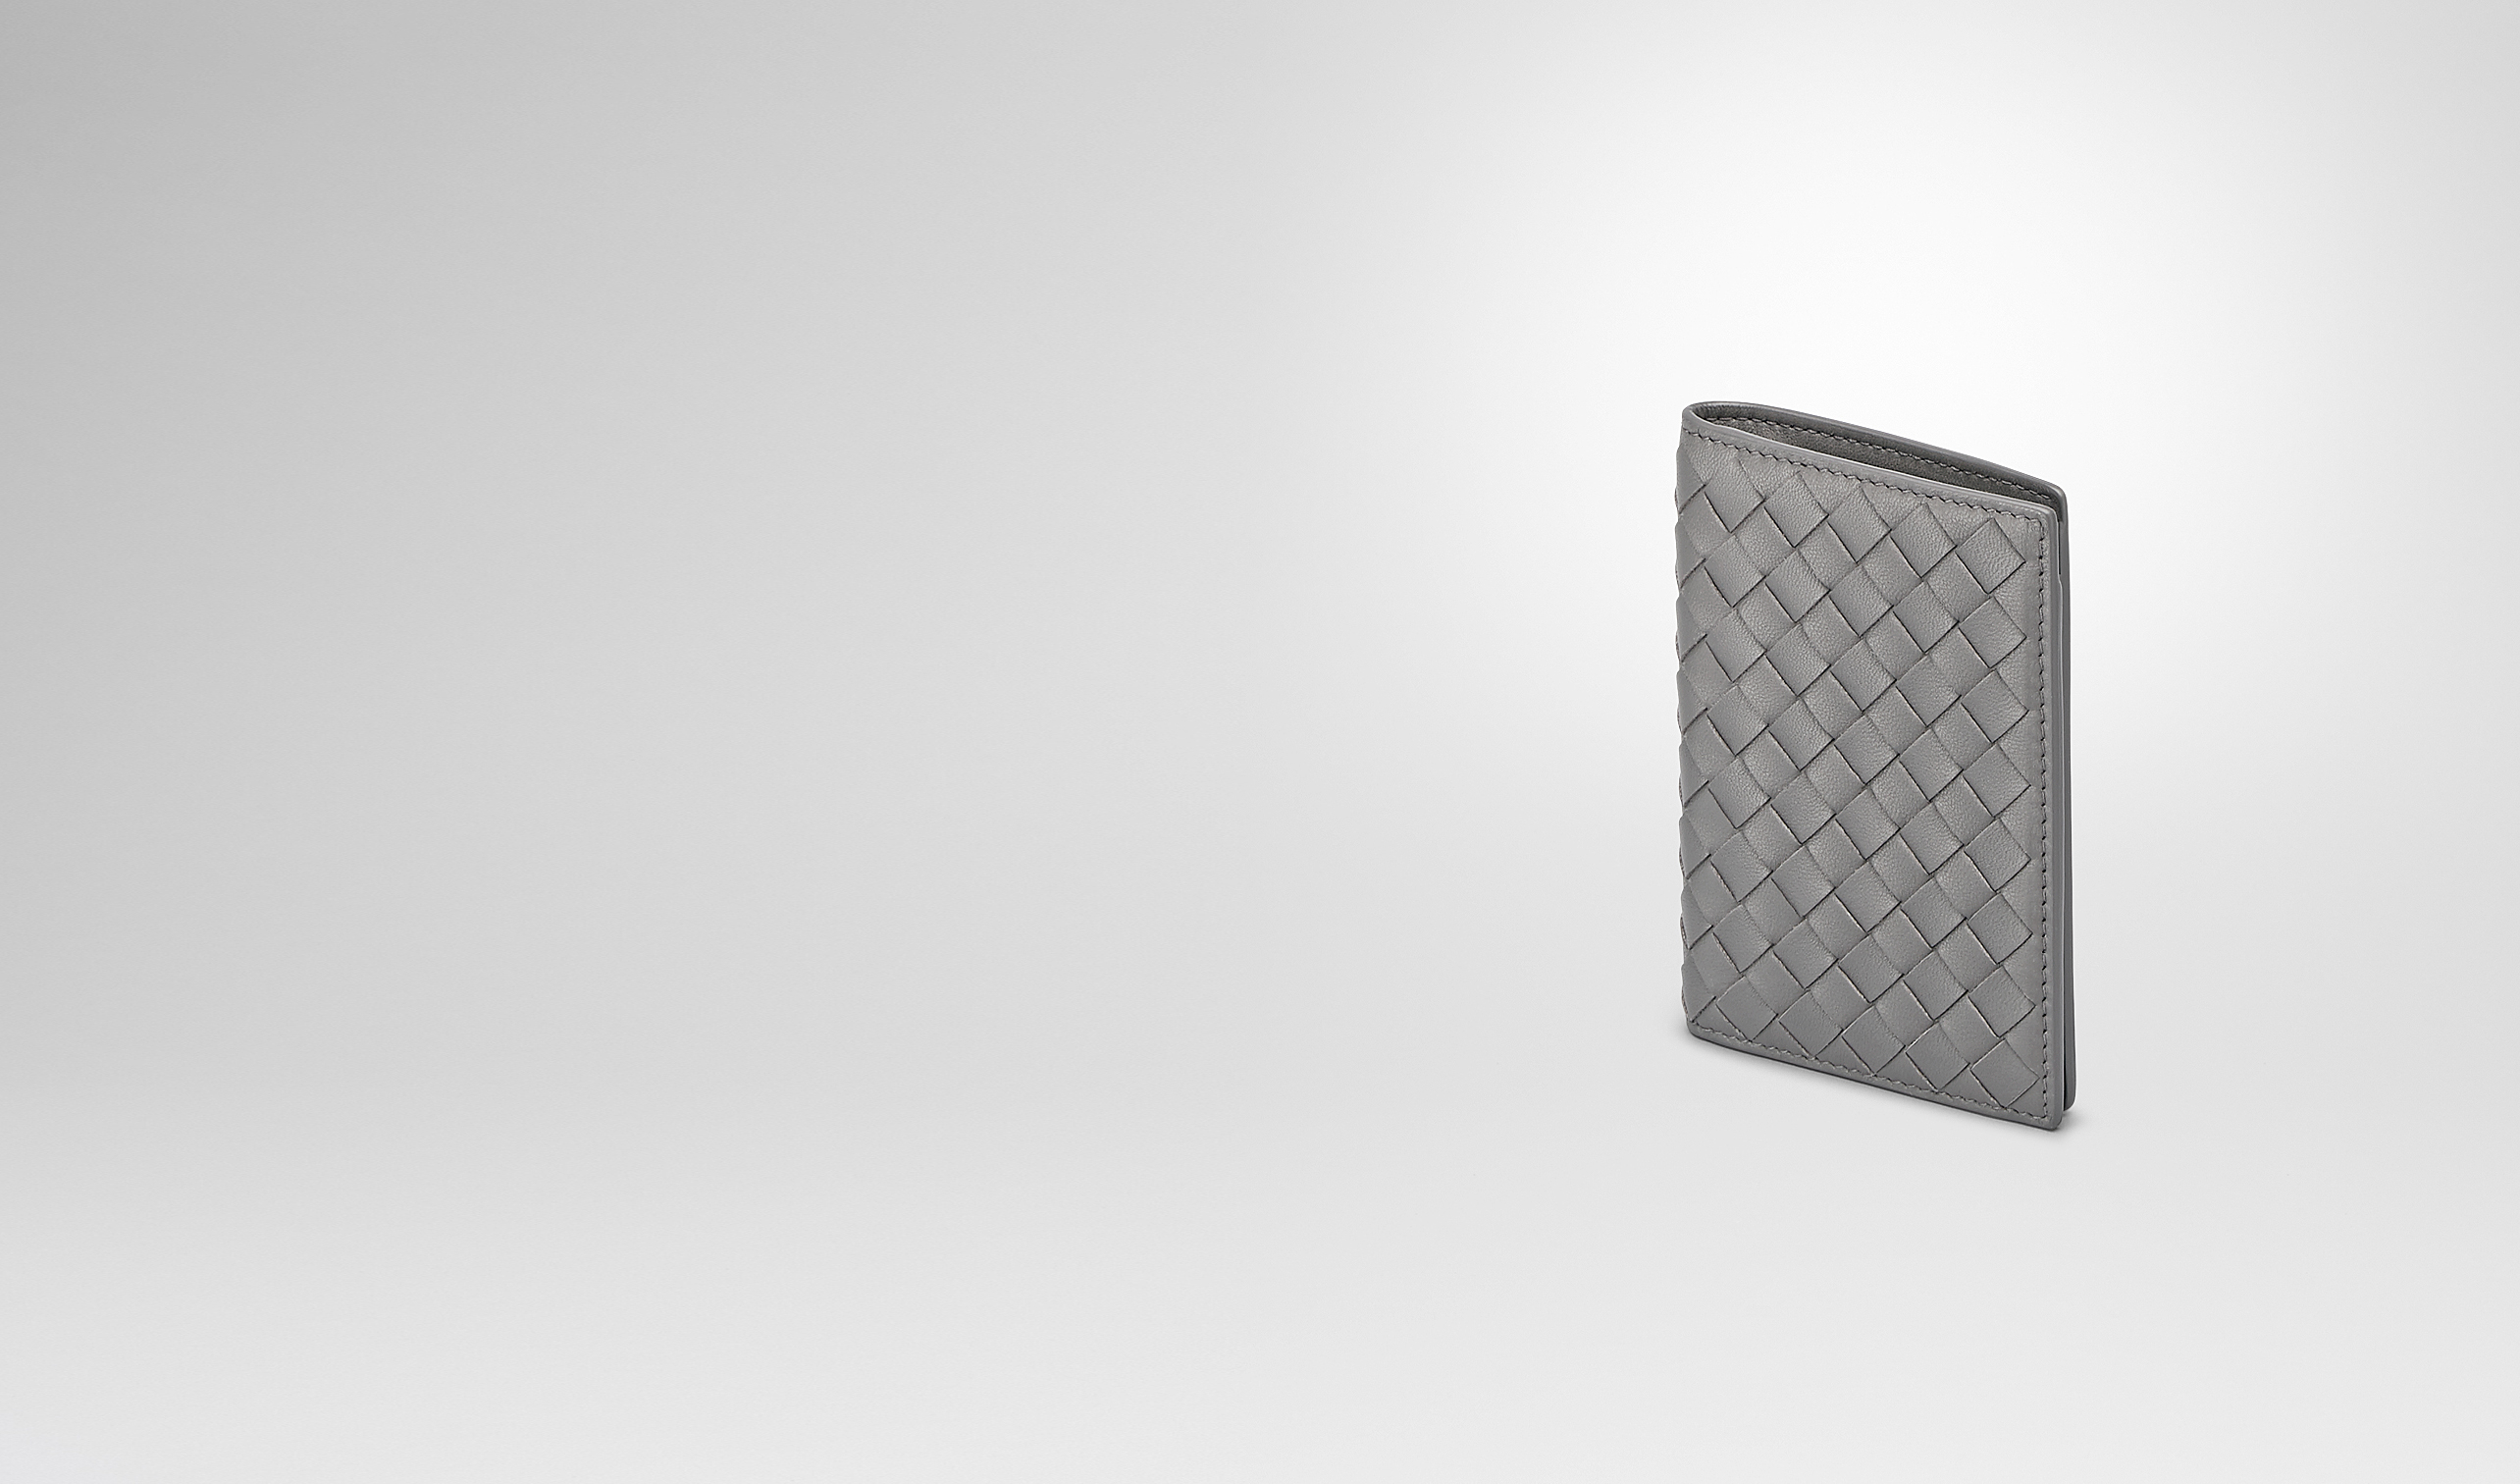 BOTTEGA VENETA Autre accessoire en cuir E PORTE-CARTES NEW LIGHT GREY EN NAPPA INTRECCIATO pl